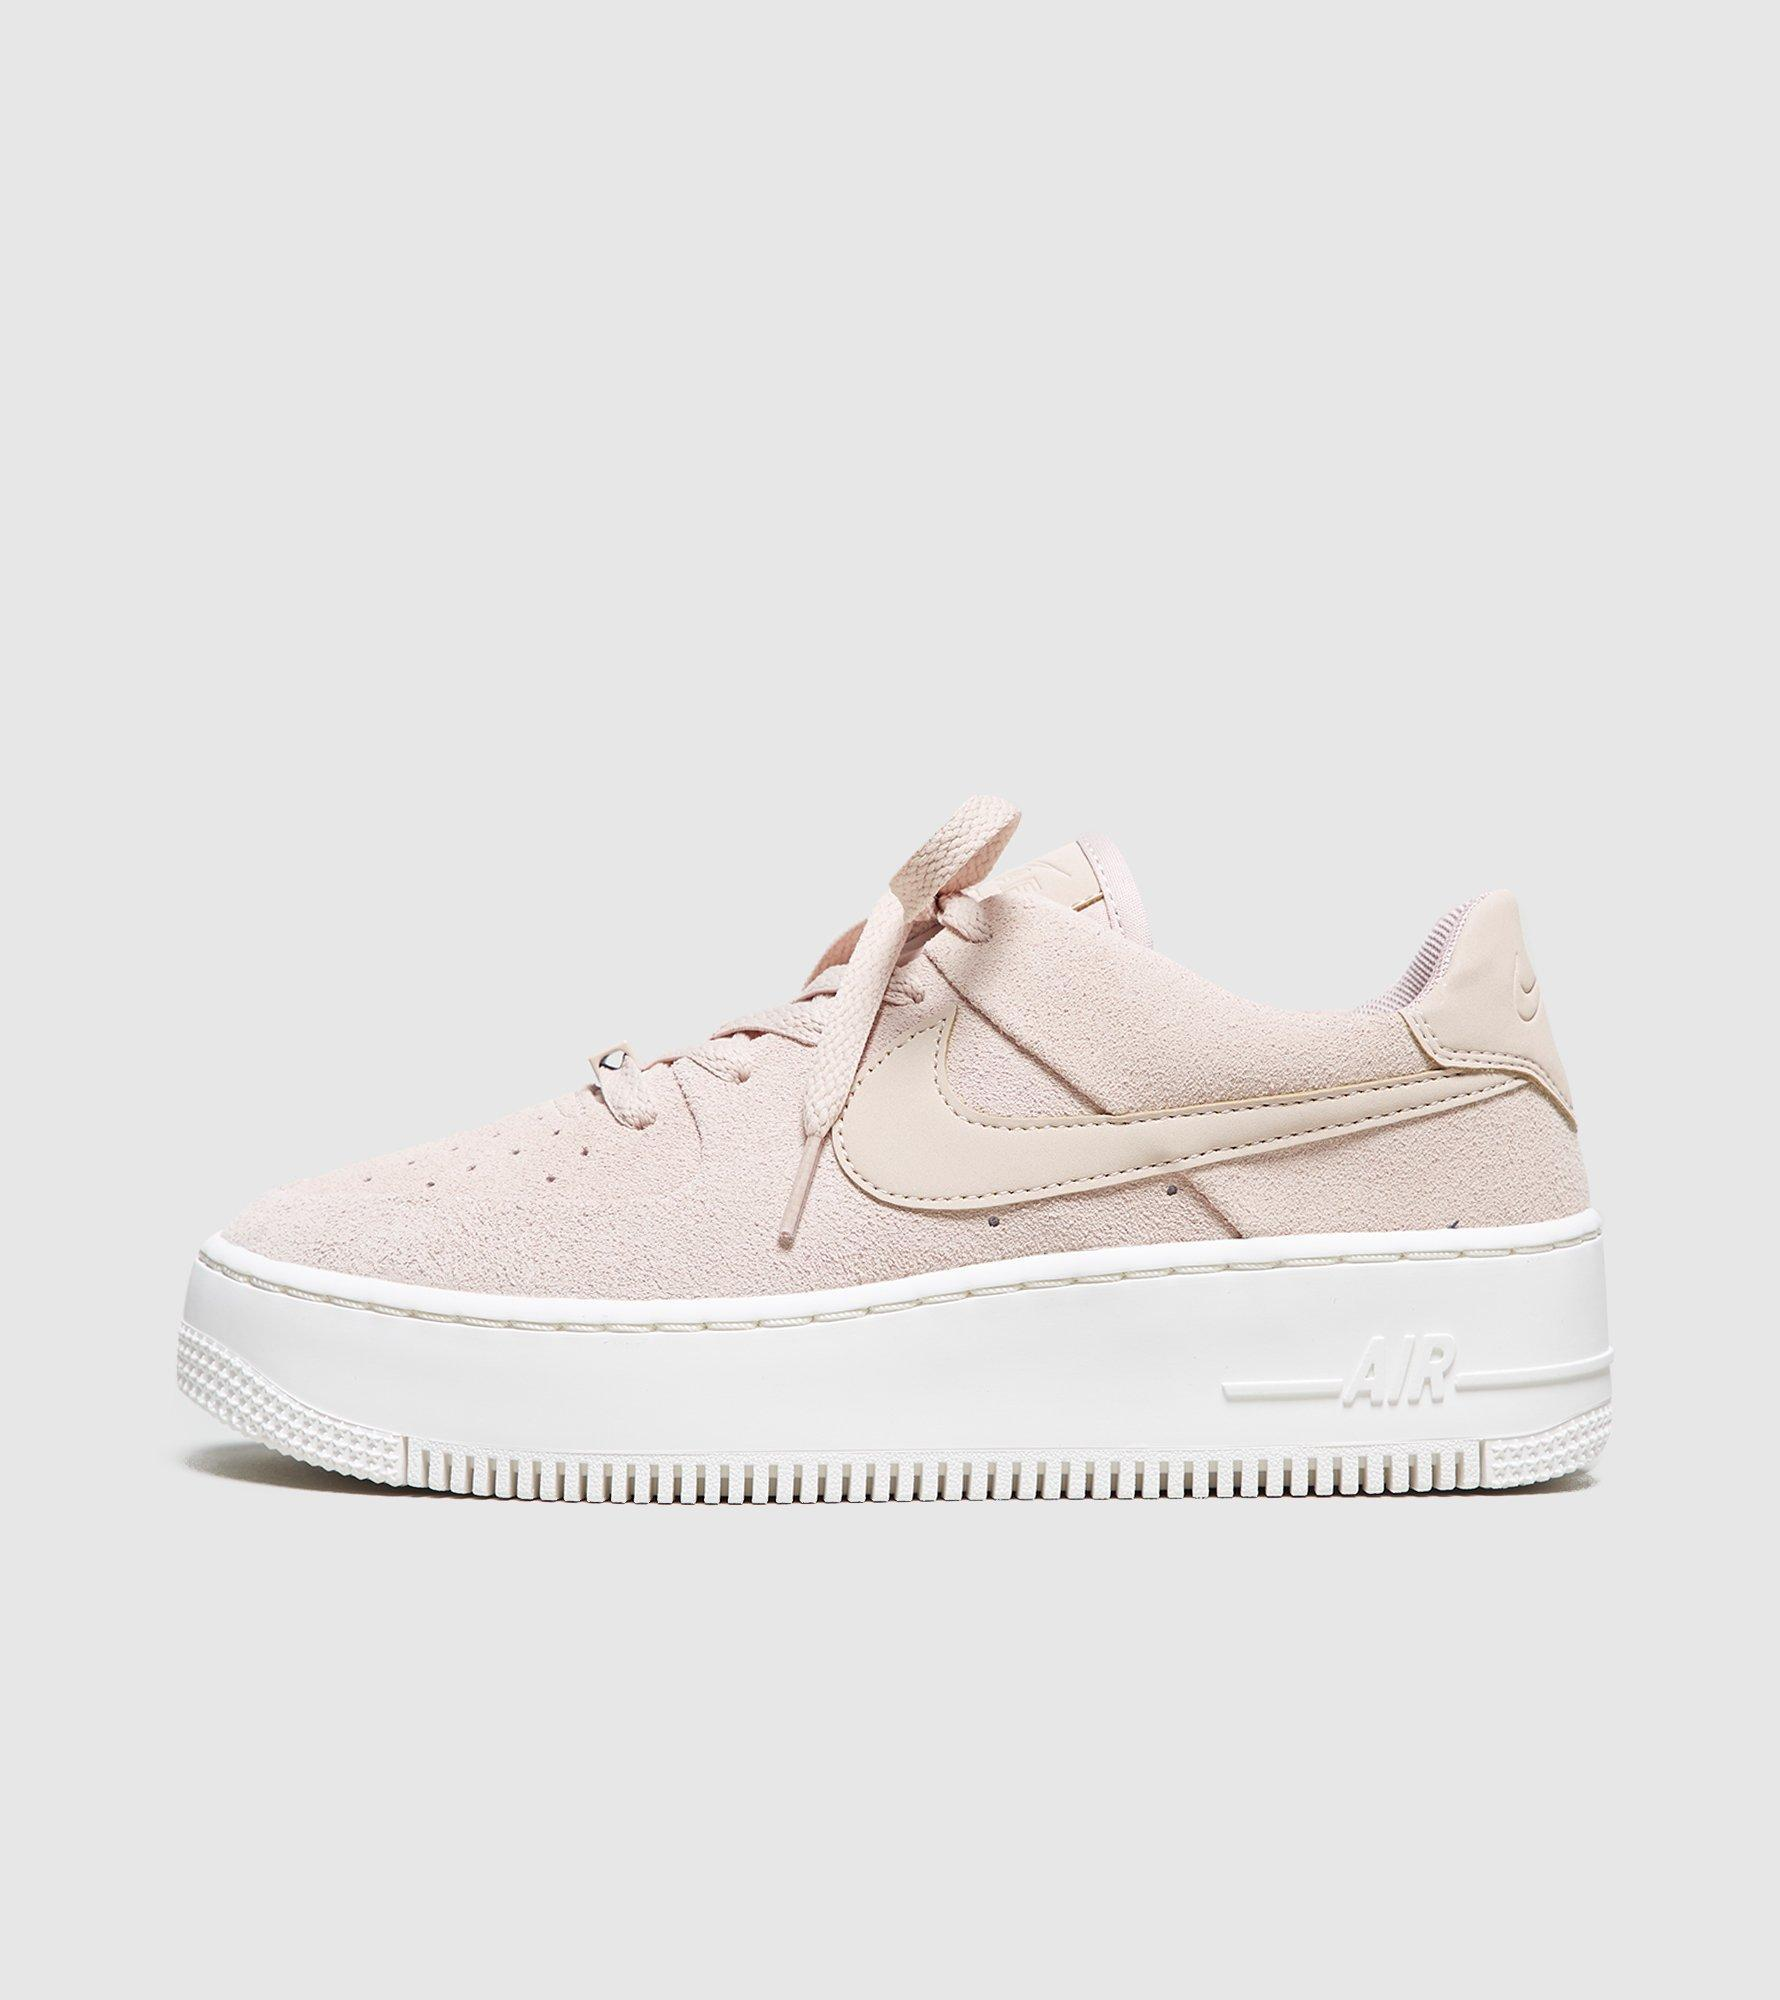 8bf1c1d5f587 Lyst - Nike Air Force 1 Sage Low Women s in Natural